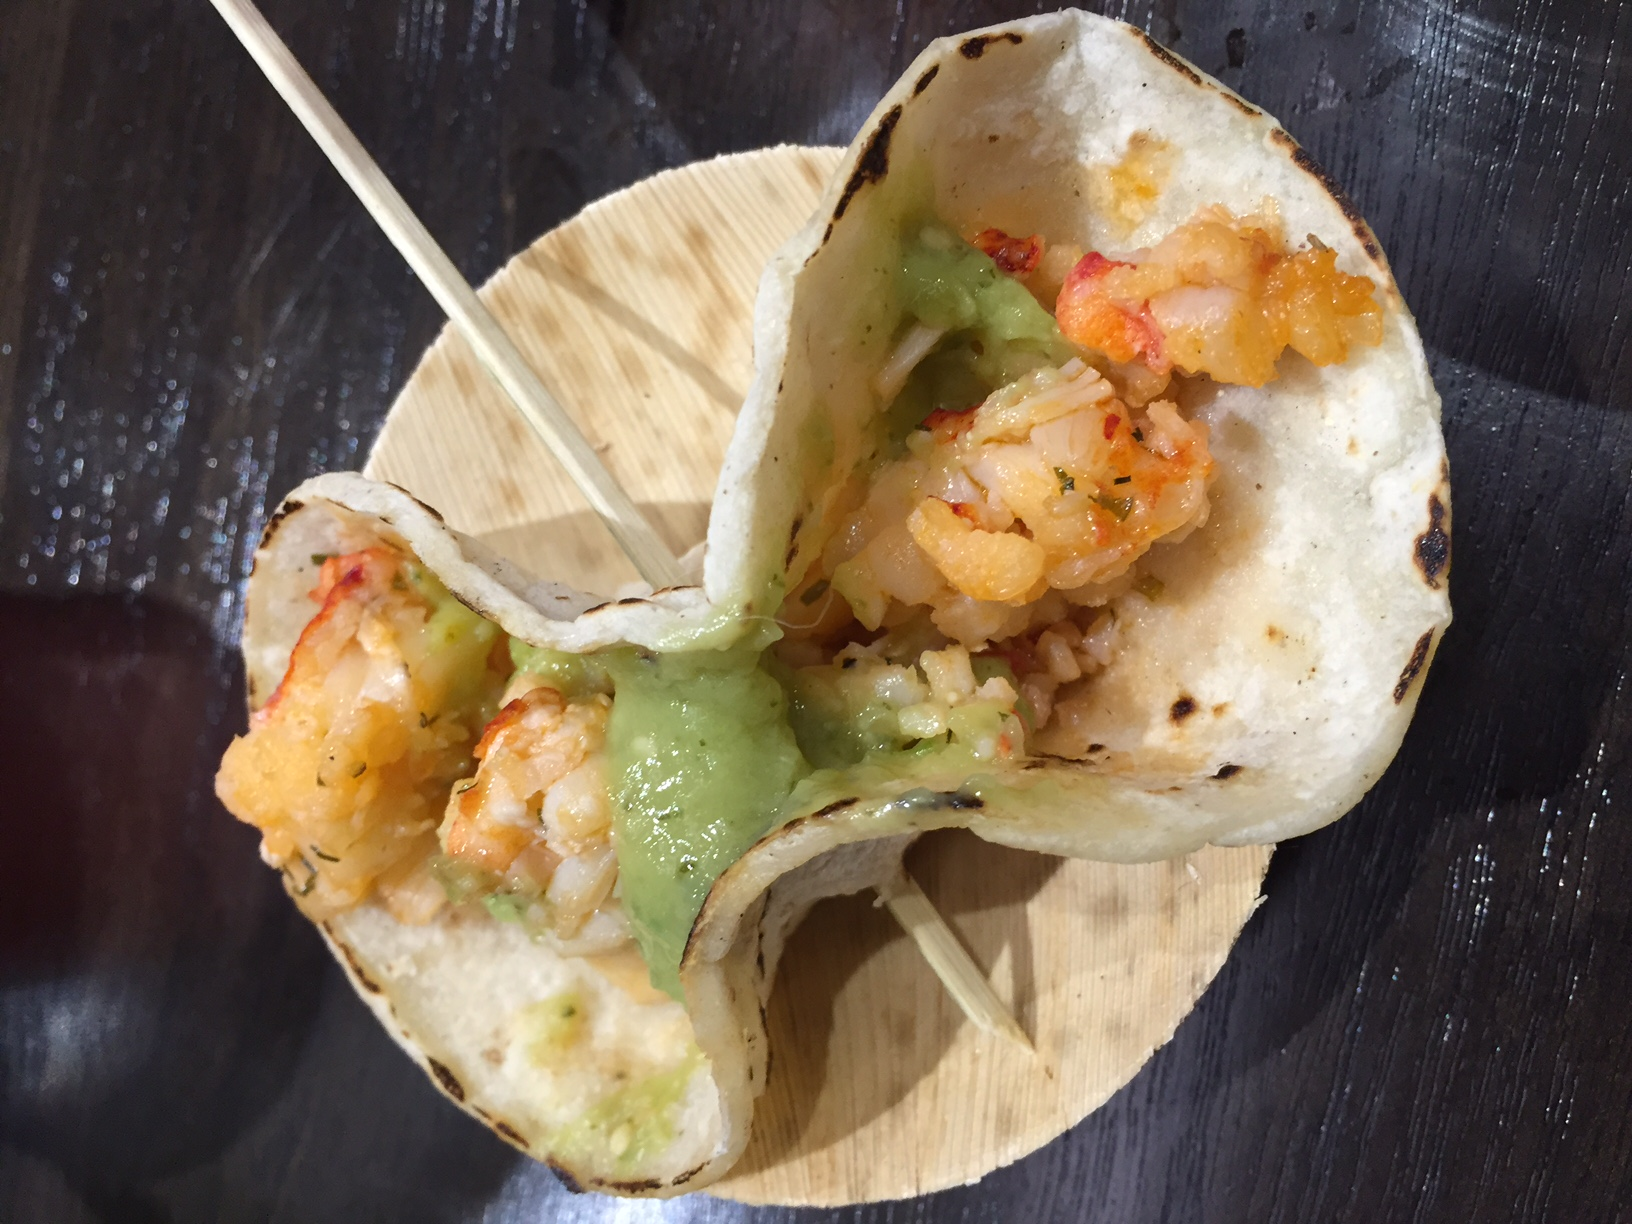 Pair your mojito with a lobster taco at T-Mobile Arena. Photo by Kristine McKenzie.